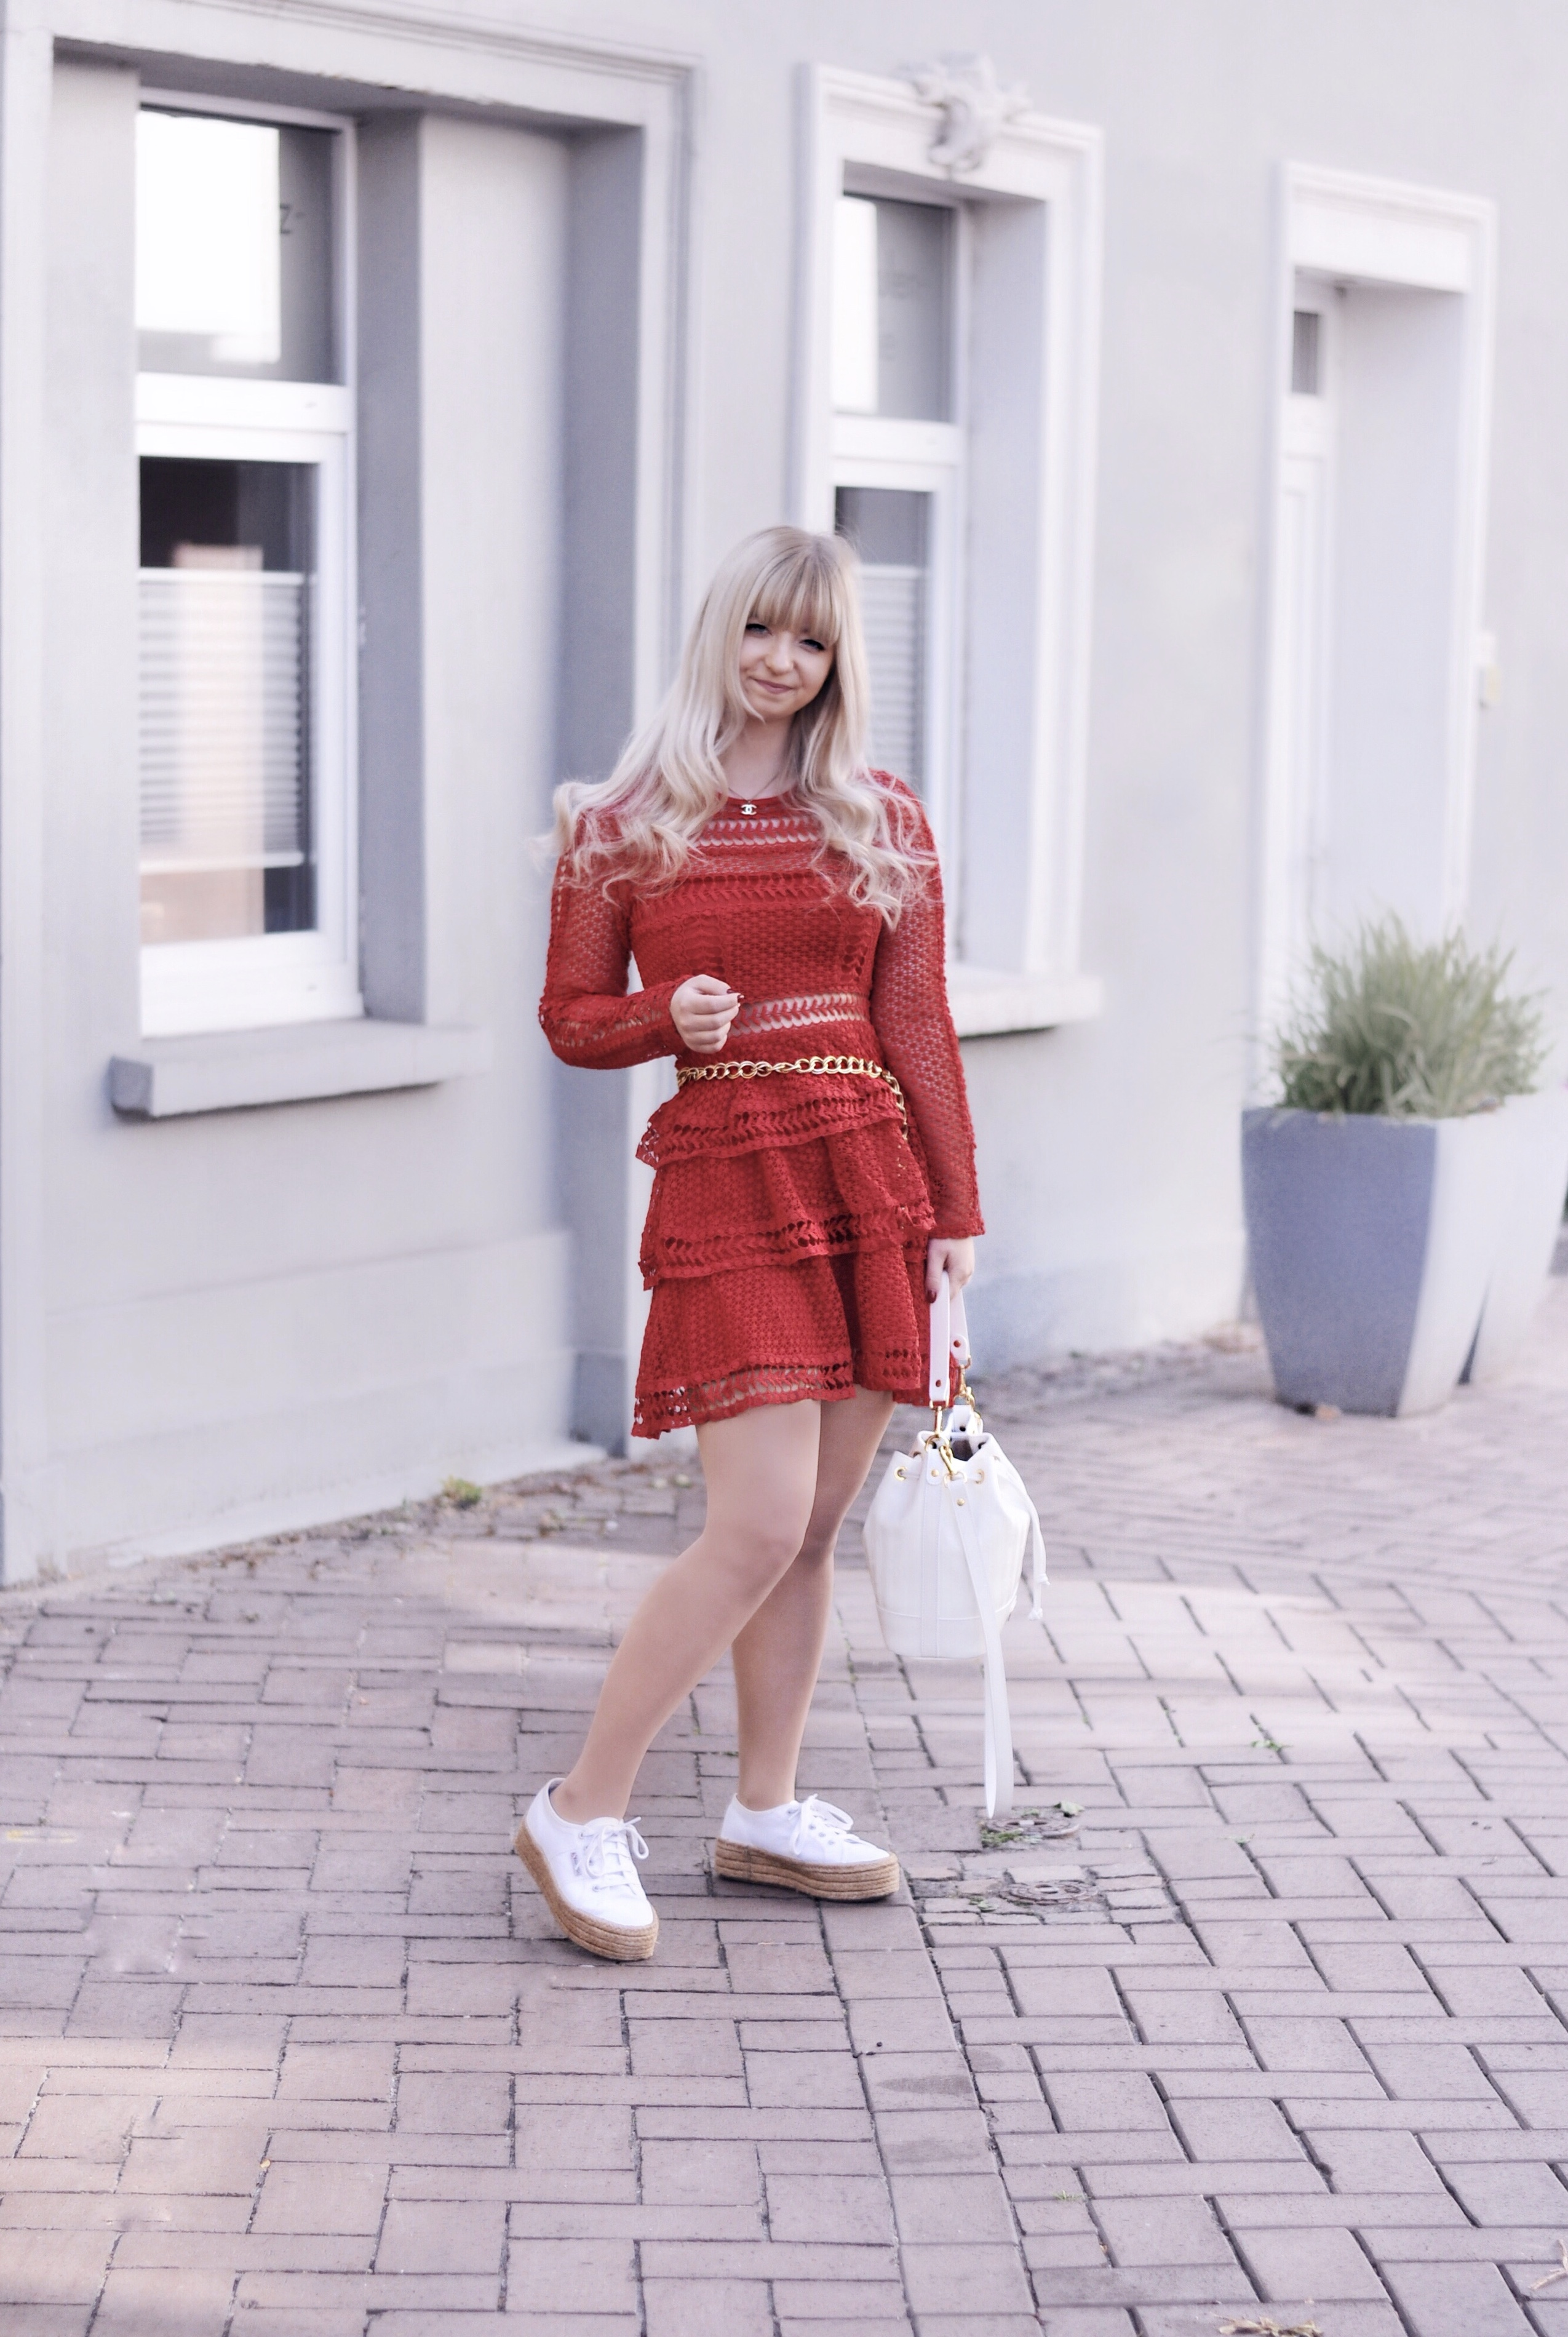 HOW TO WEAR: LACE SUMMER DRESSES